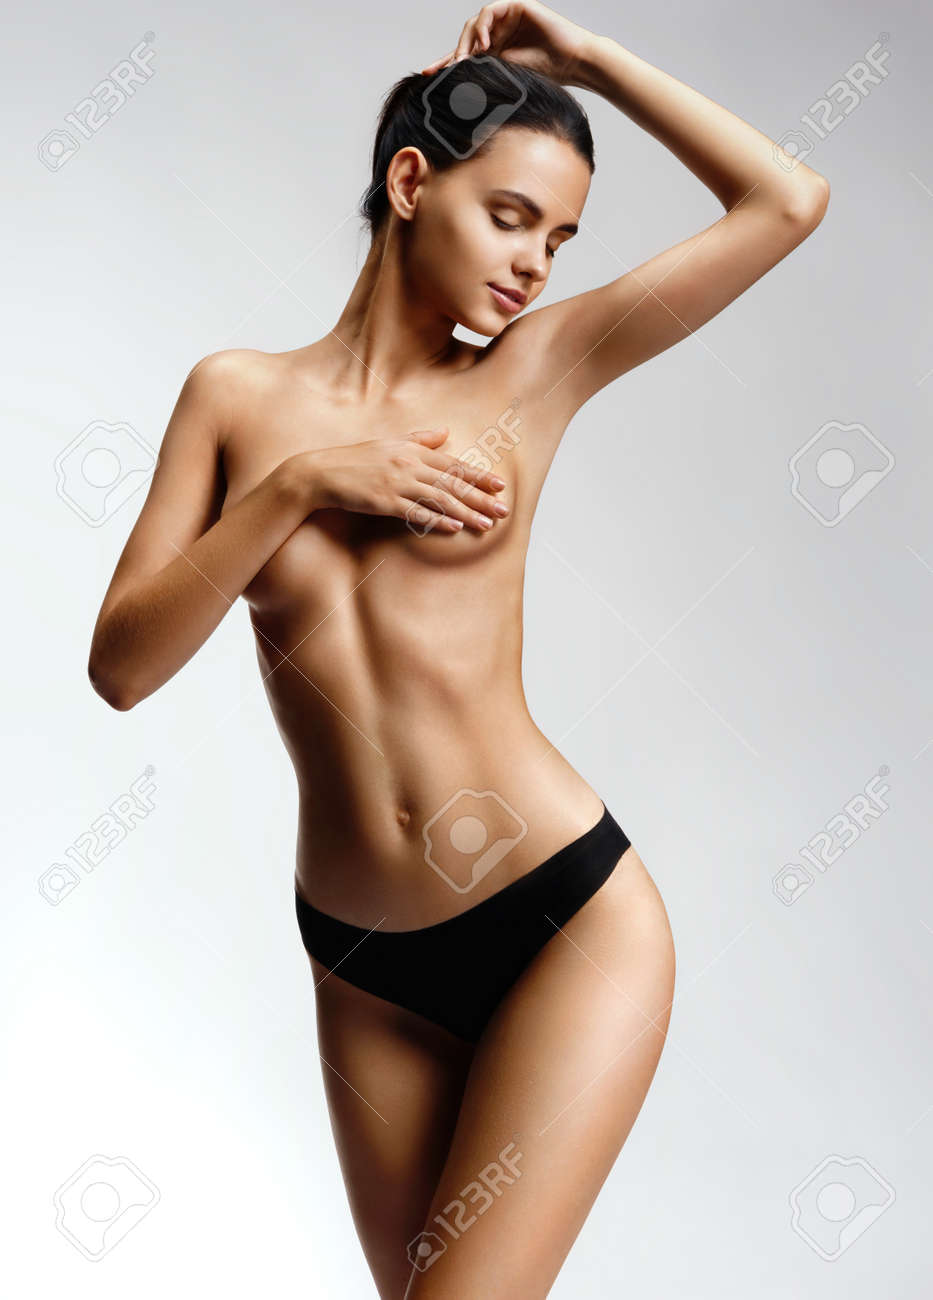 smiling model cover her nude breast. young girl with perfect.. stock